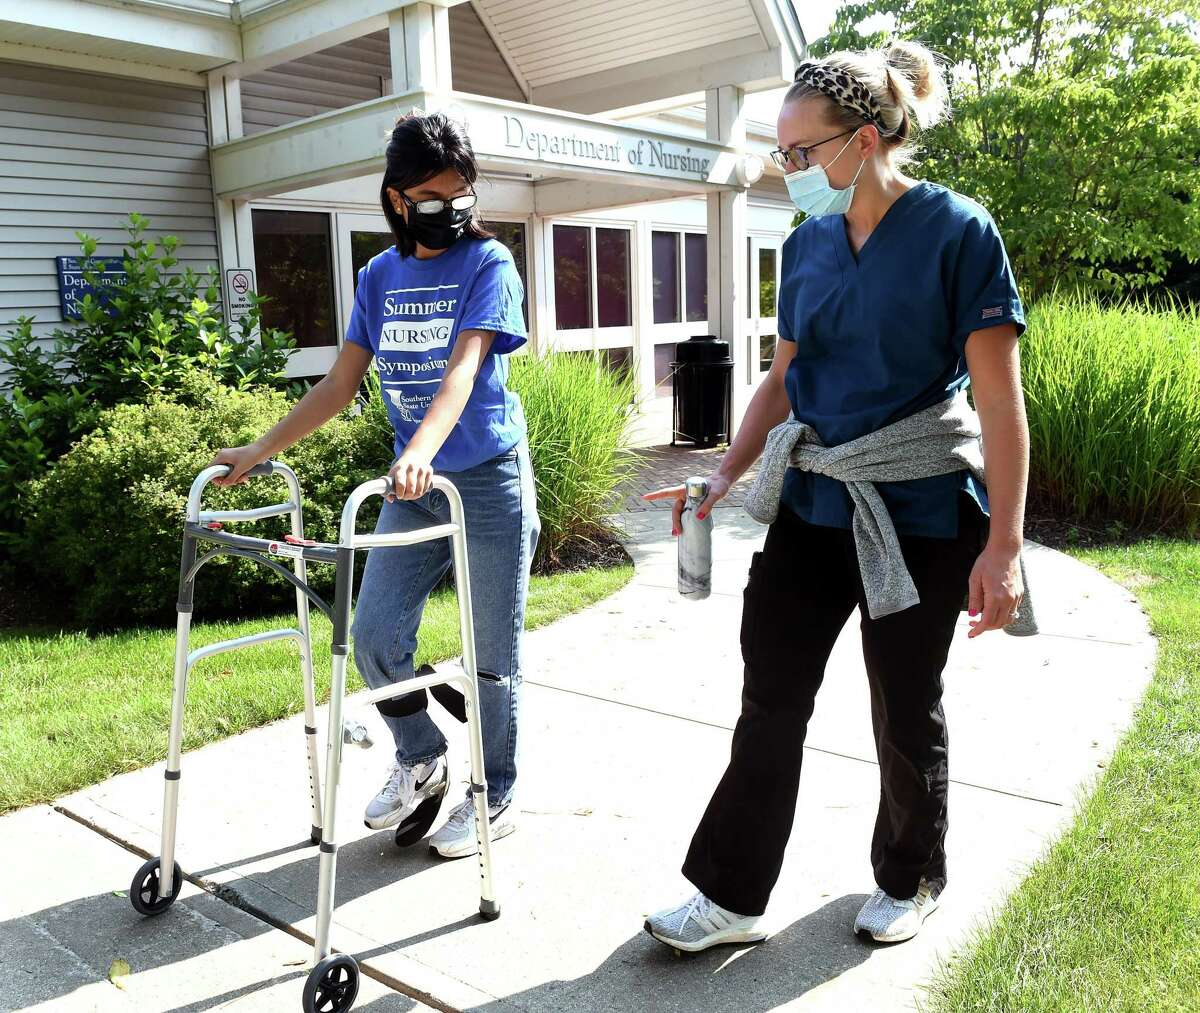 Paulette Jara, left, 16, of New Haven participates in a simulation of having a mobility disability and cataracts with RNC Alyssa Glasow during the Summer Nursing Symposium at Southern Connecticut State University on July 15, 2021. Jara was part of a group of 14 New Haven students of color being exposed to nursing through simulations and shadowing.